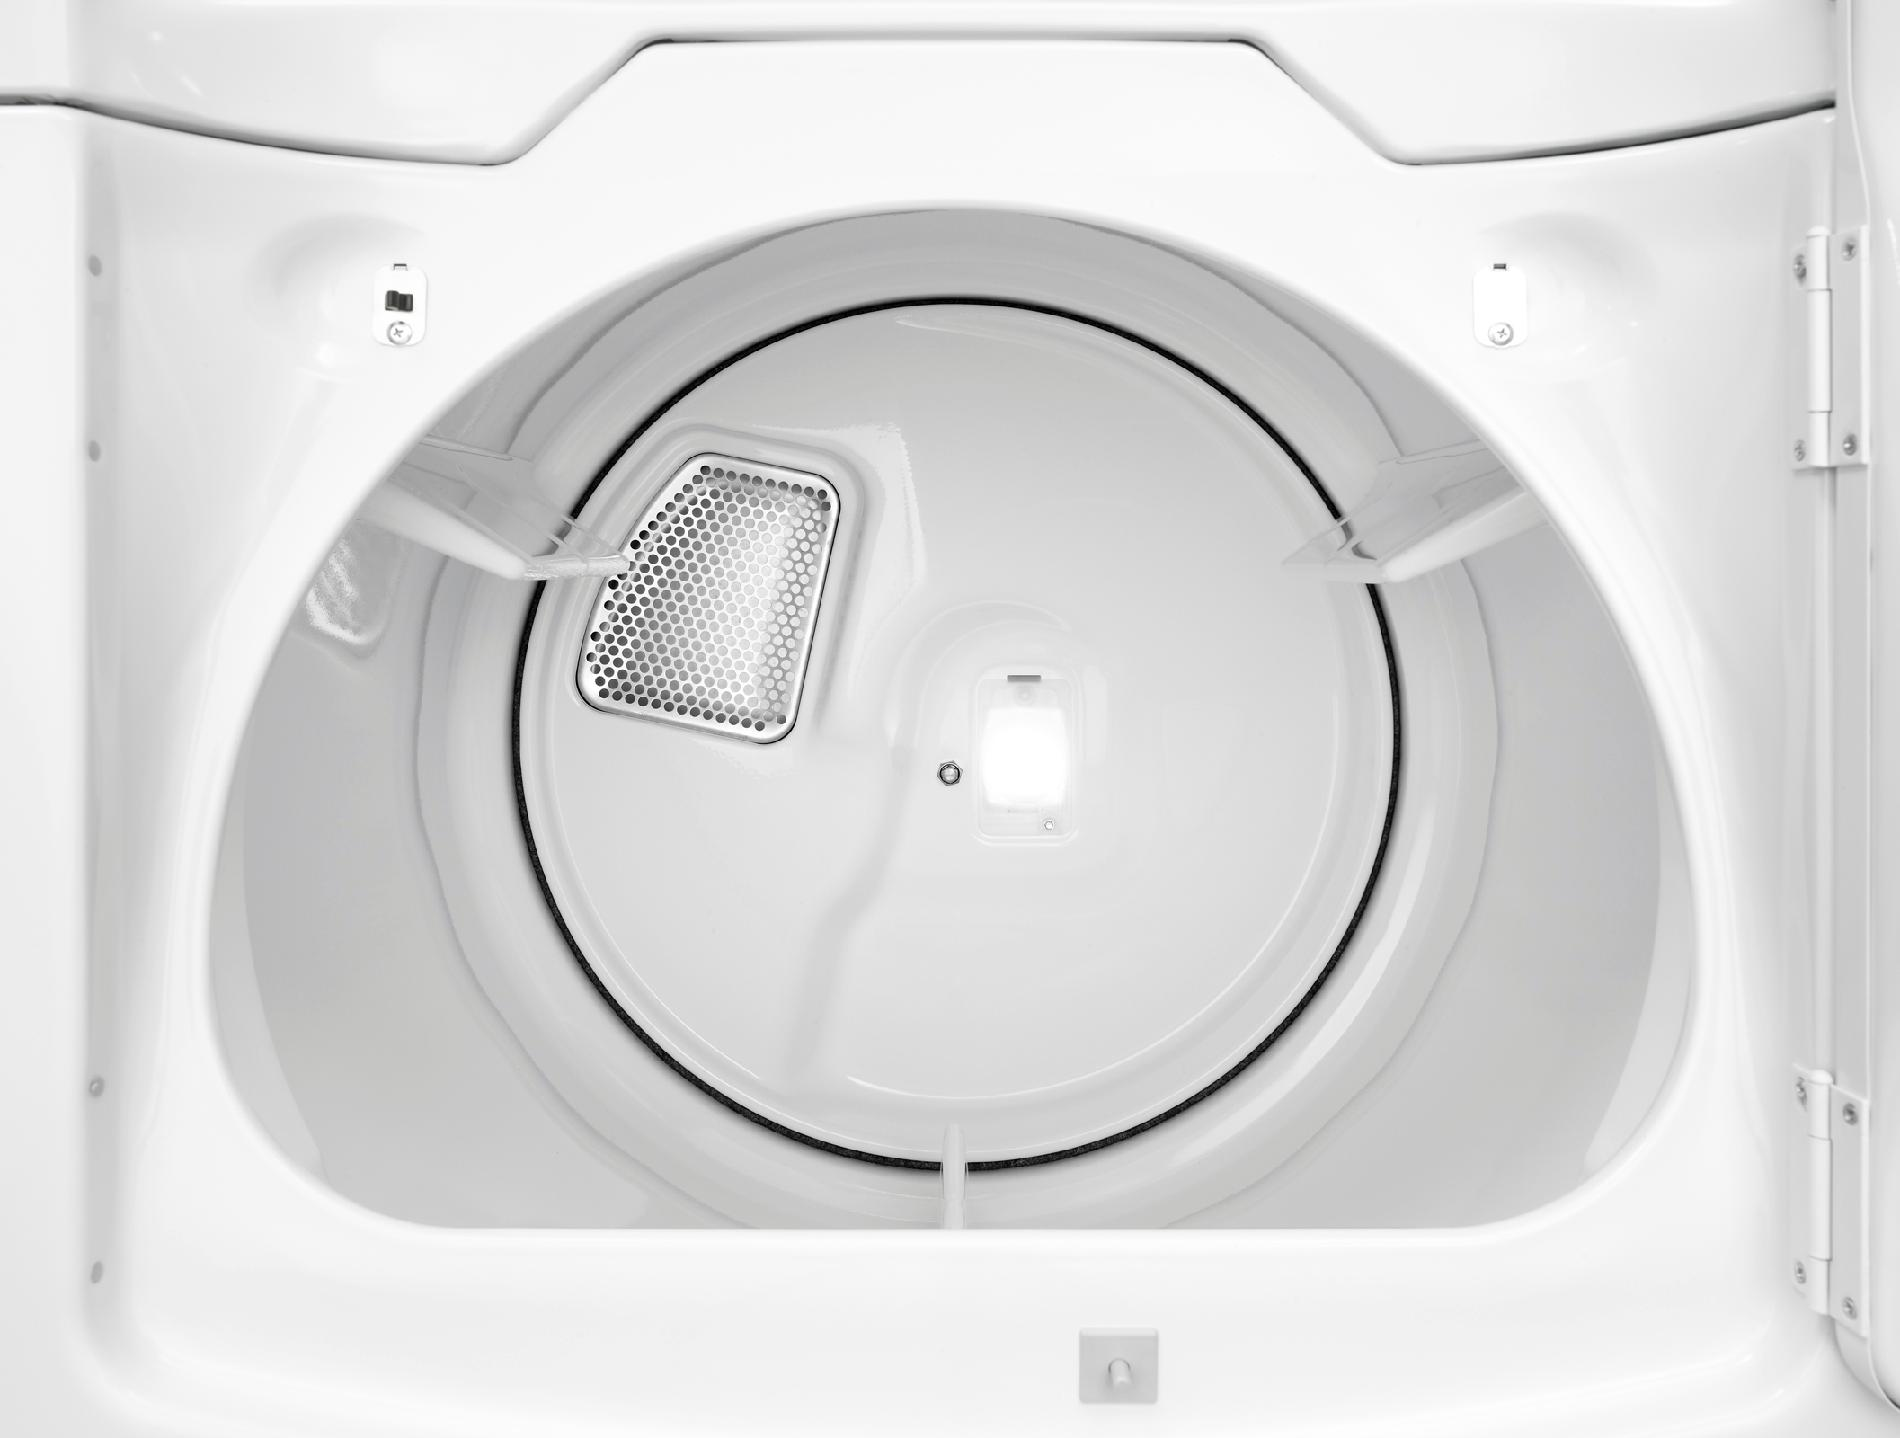 Whirlpool 7.6 cu. ft. Cabrio® Platinum Electric Dryer w/ Enhanced Touch-Up Steam Cycle - White